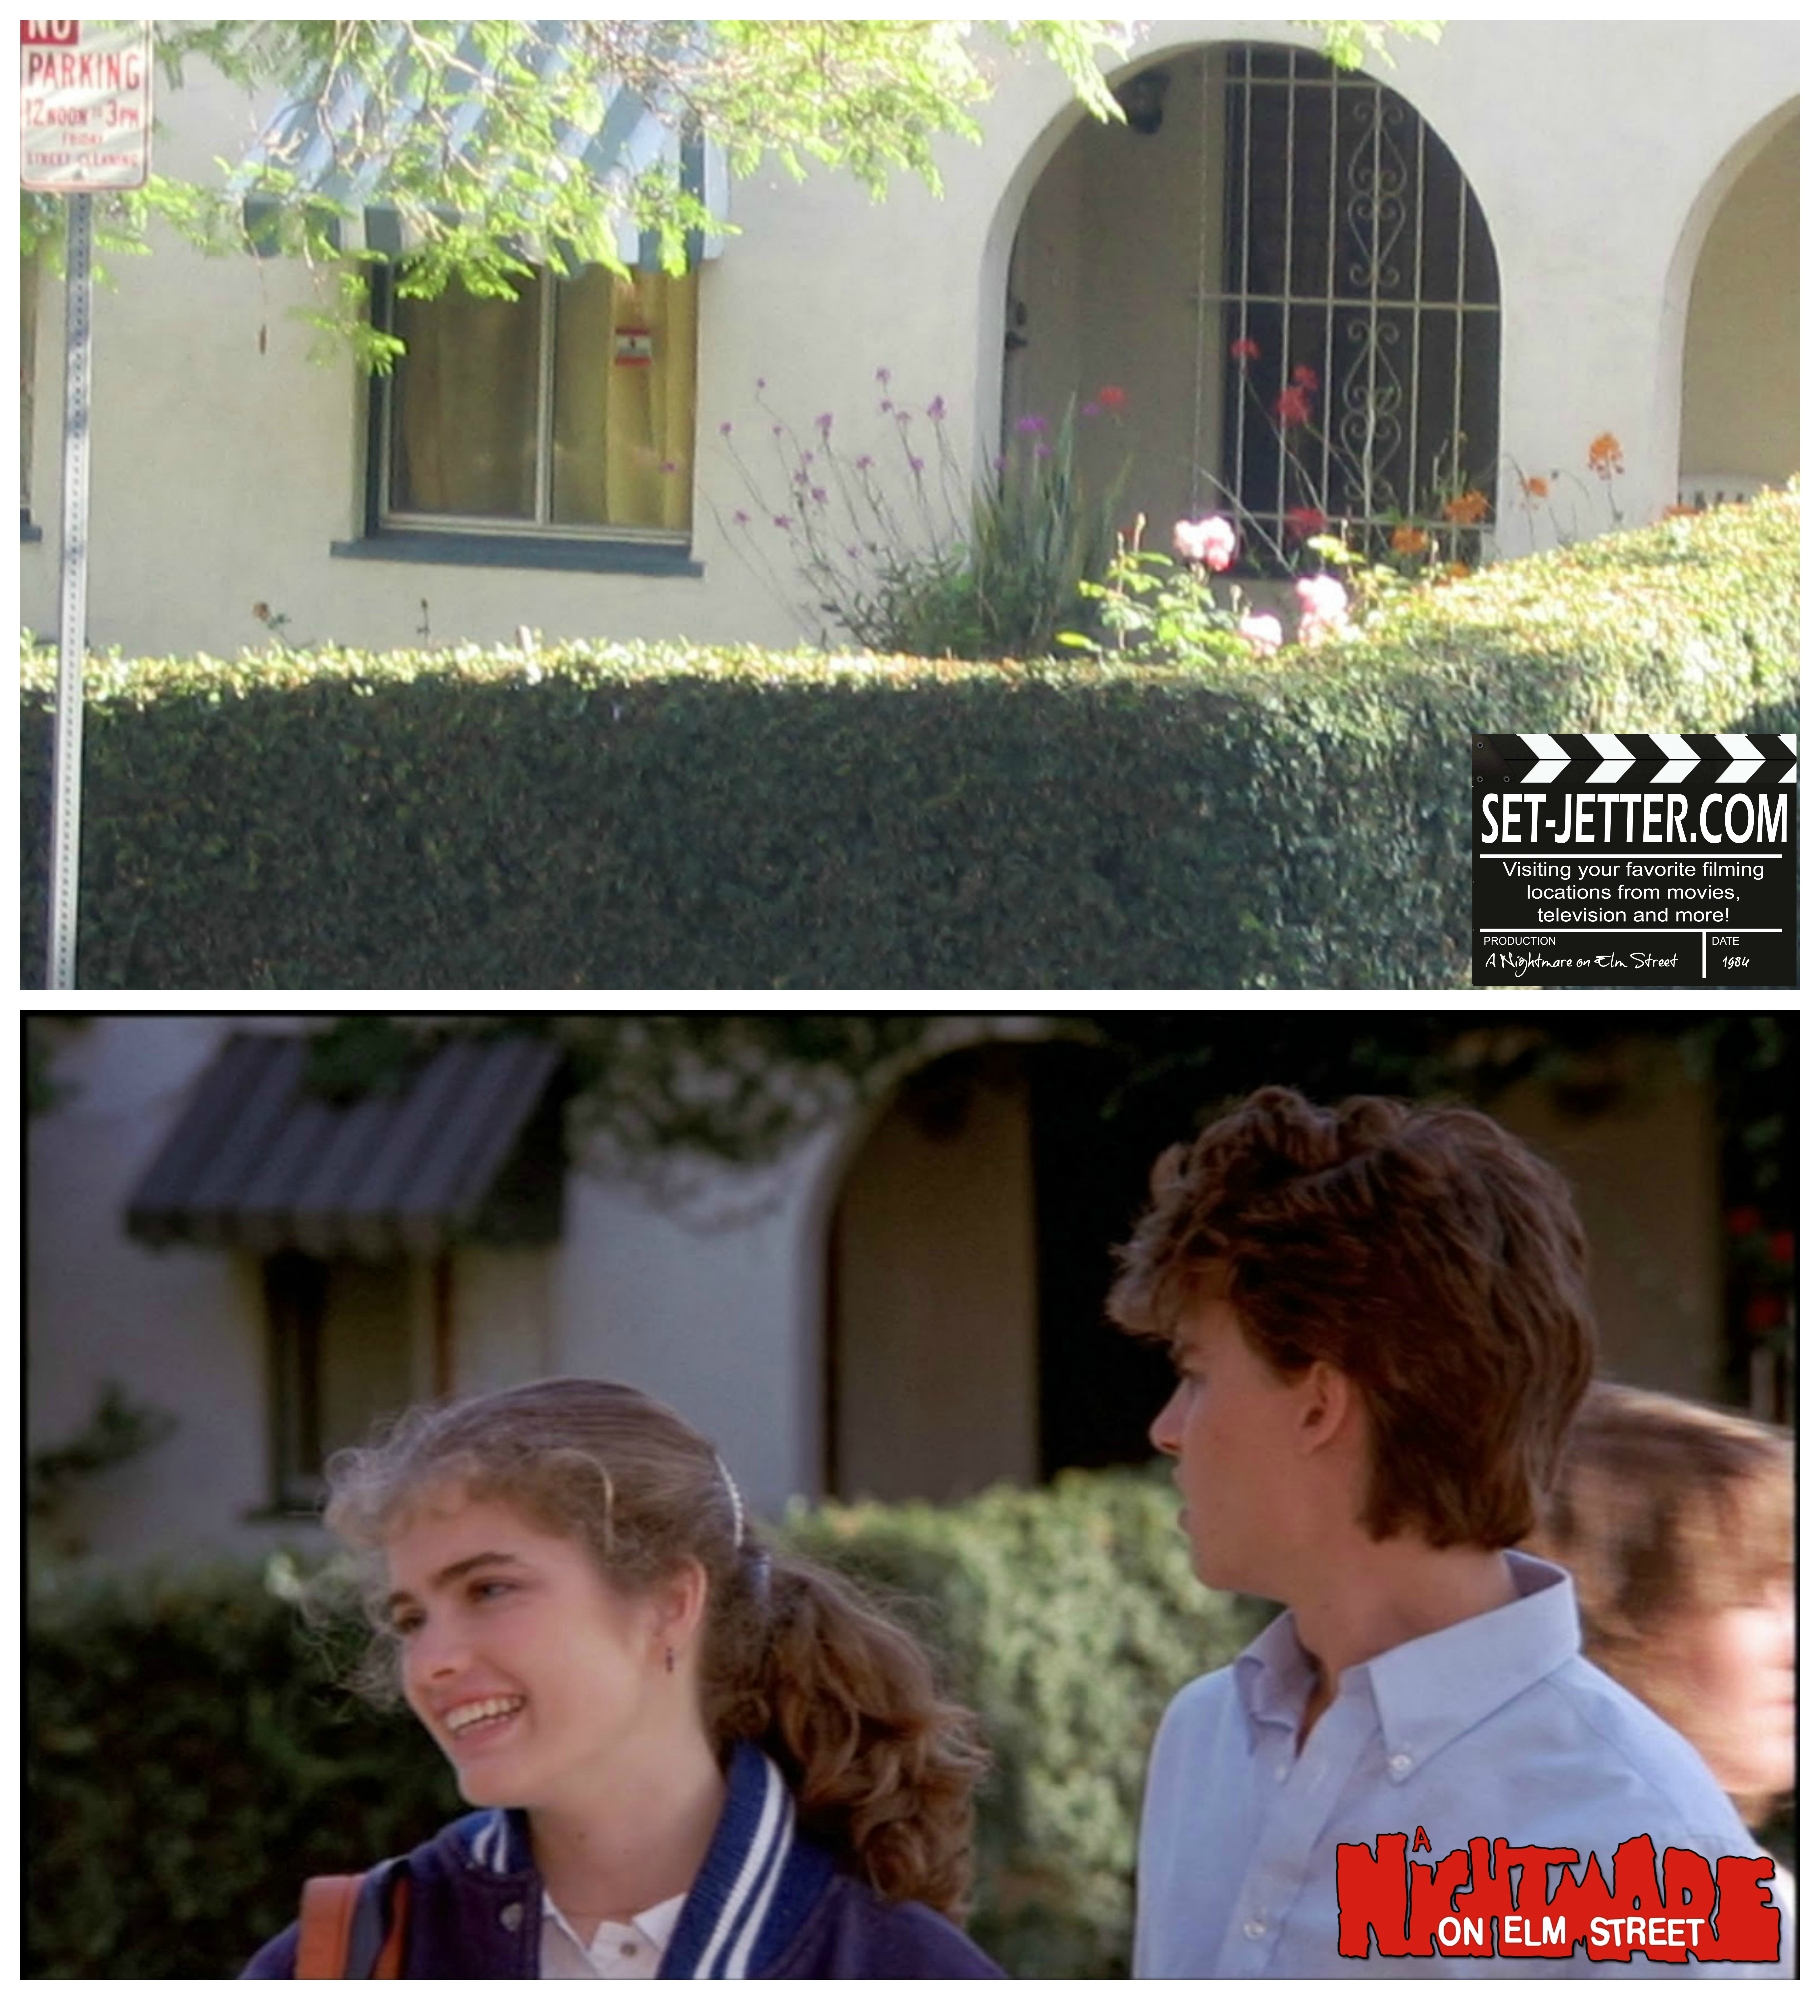 Nightmare on Elm Street comparison 04.jpg